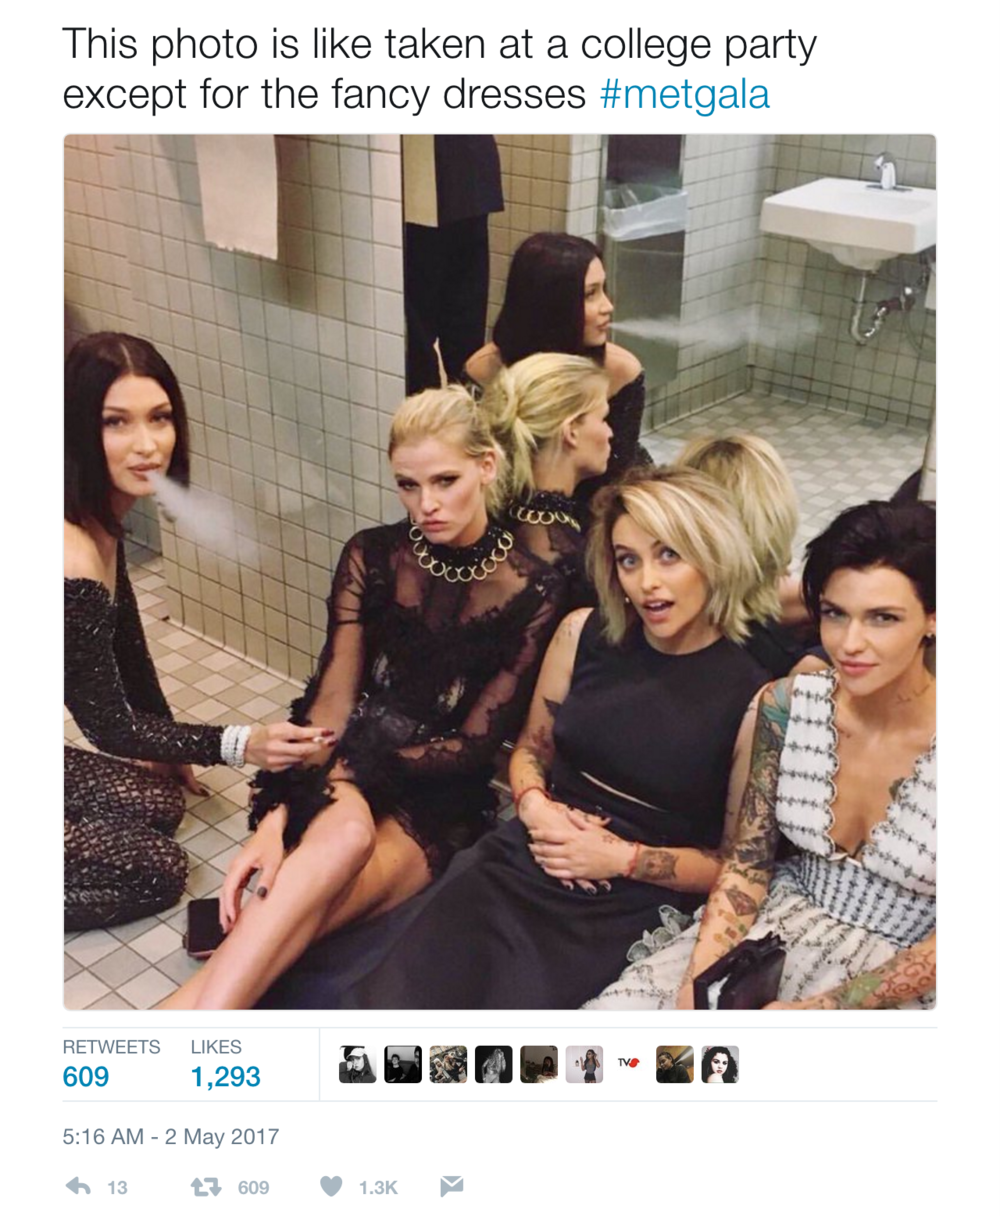 Tweet of an image from the 2017 Met Gala